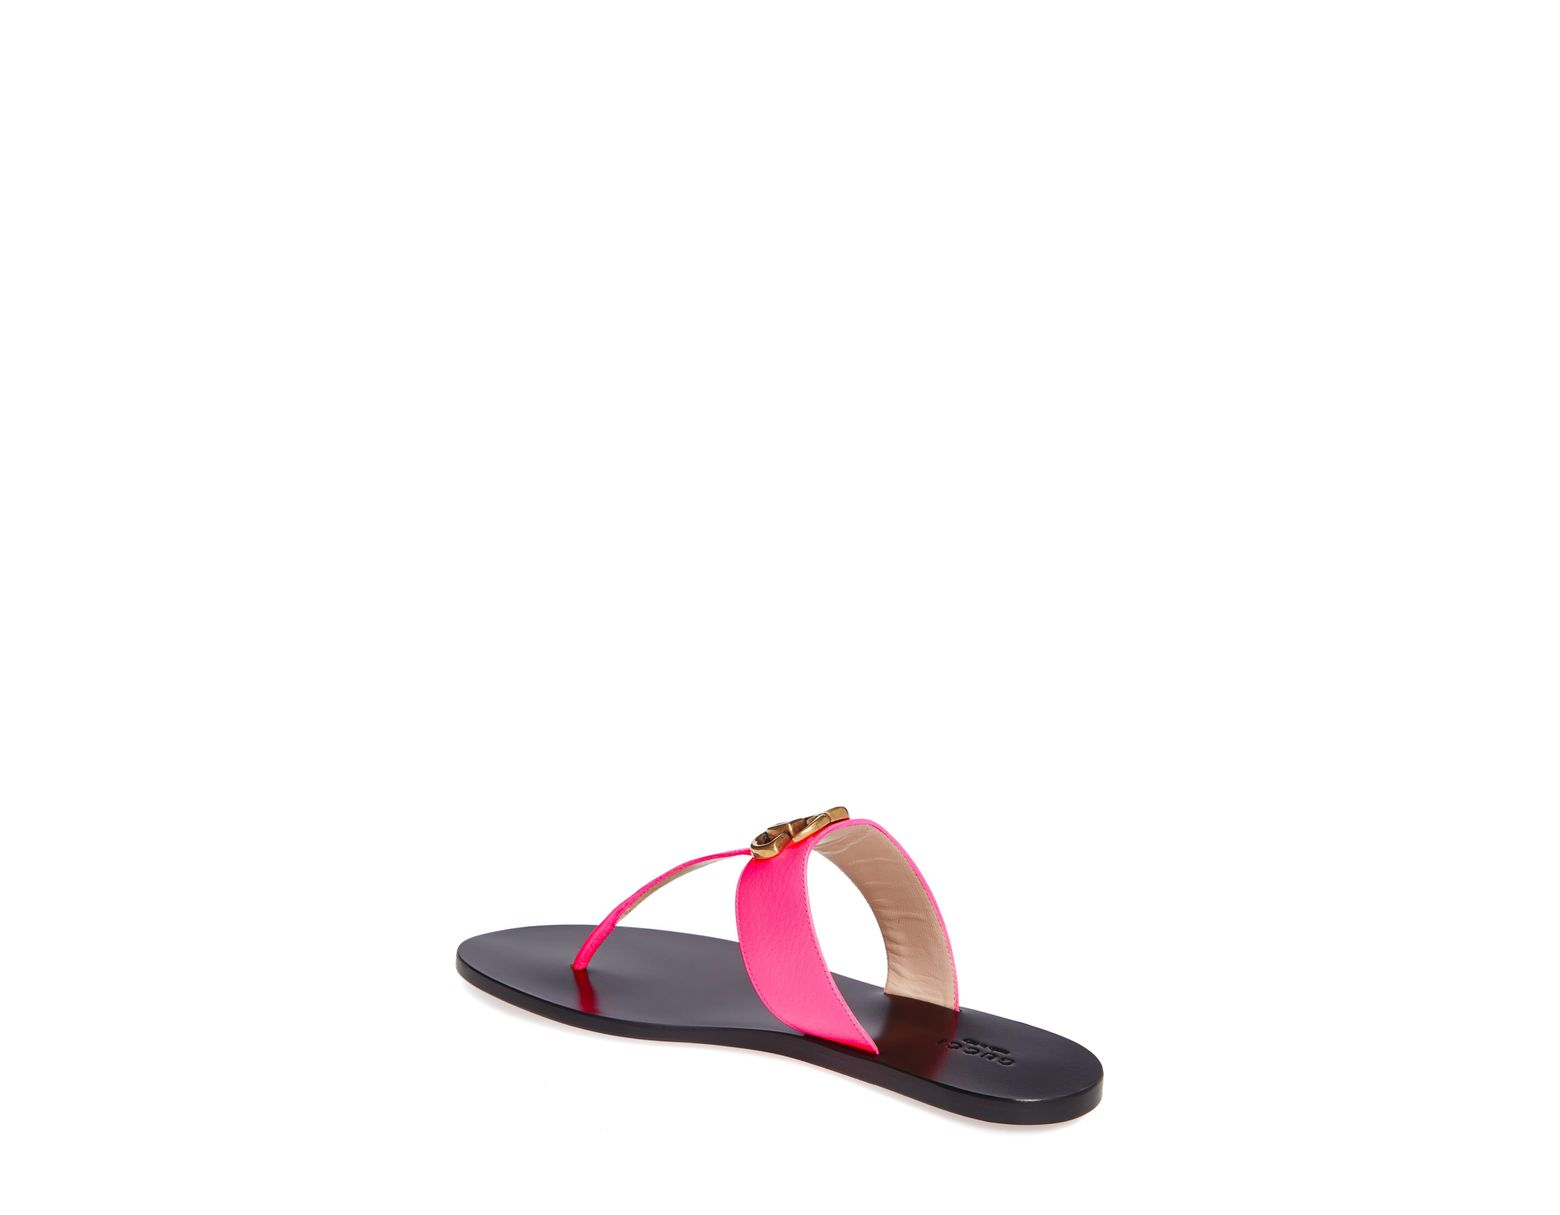 bff057034 Gucci Leather Thong Sandal With Double G in Pink - Save 9% - Lyst